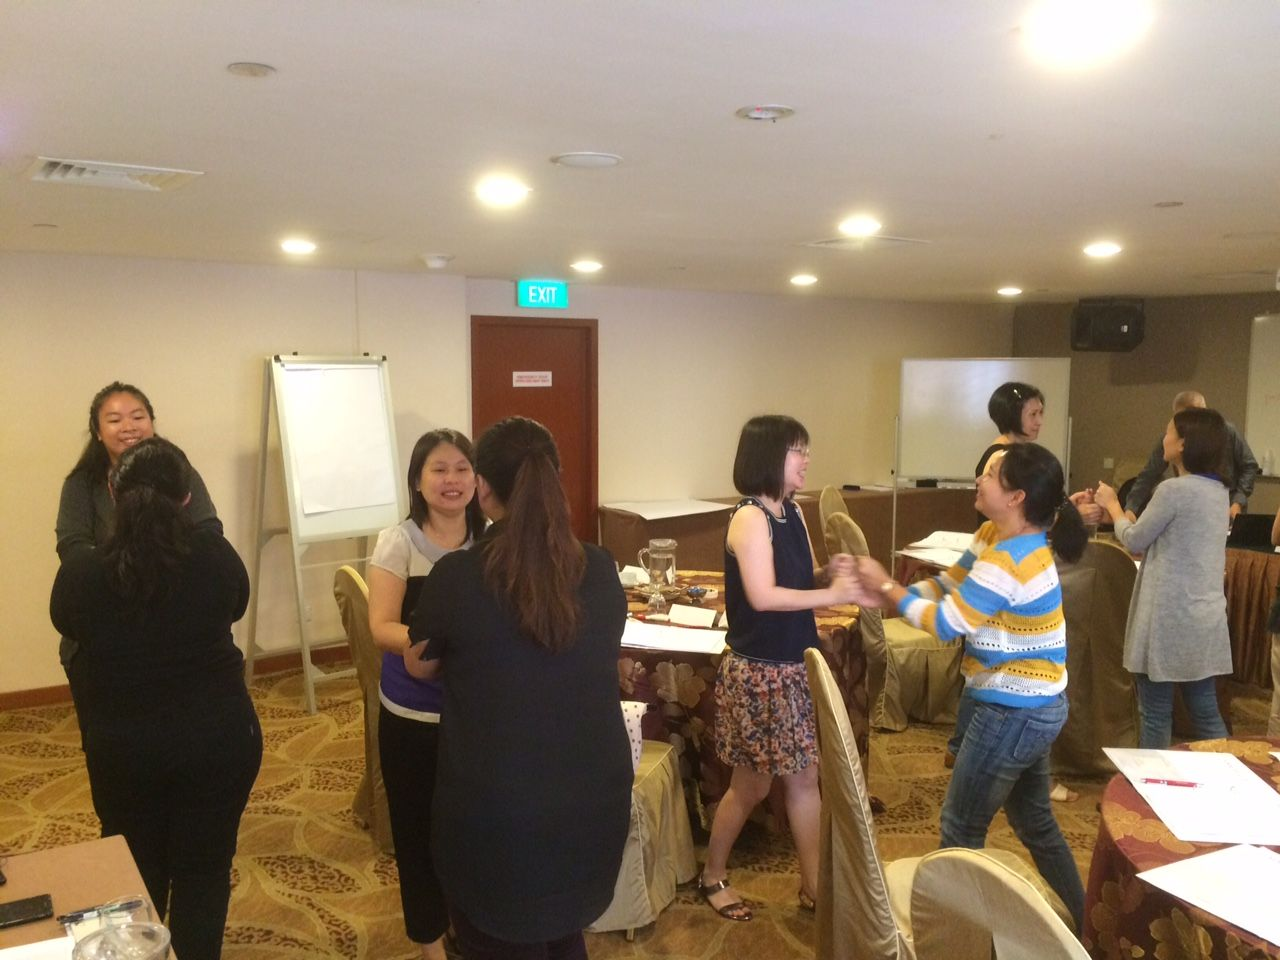 Participants getting acquainted with each other.